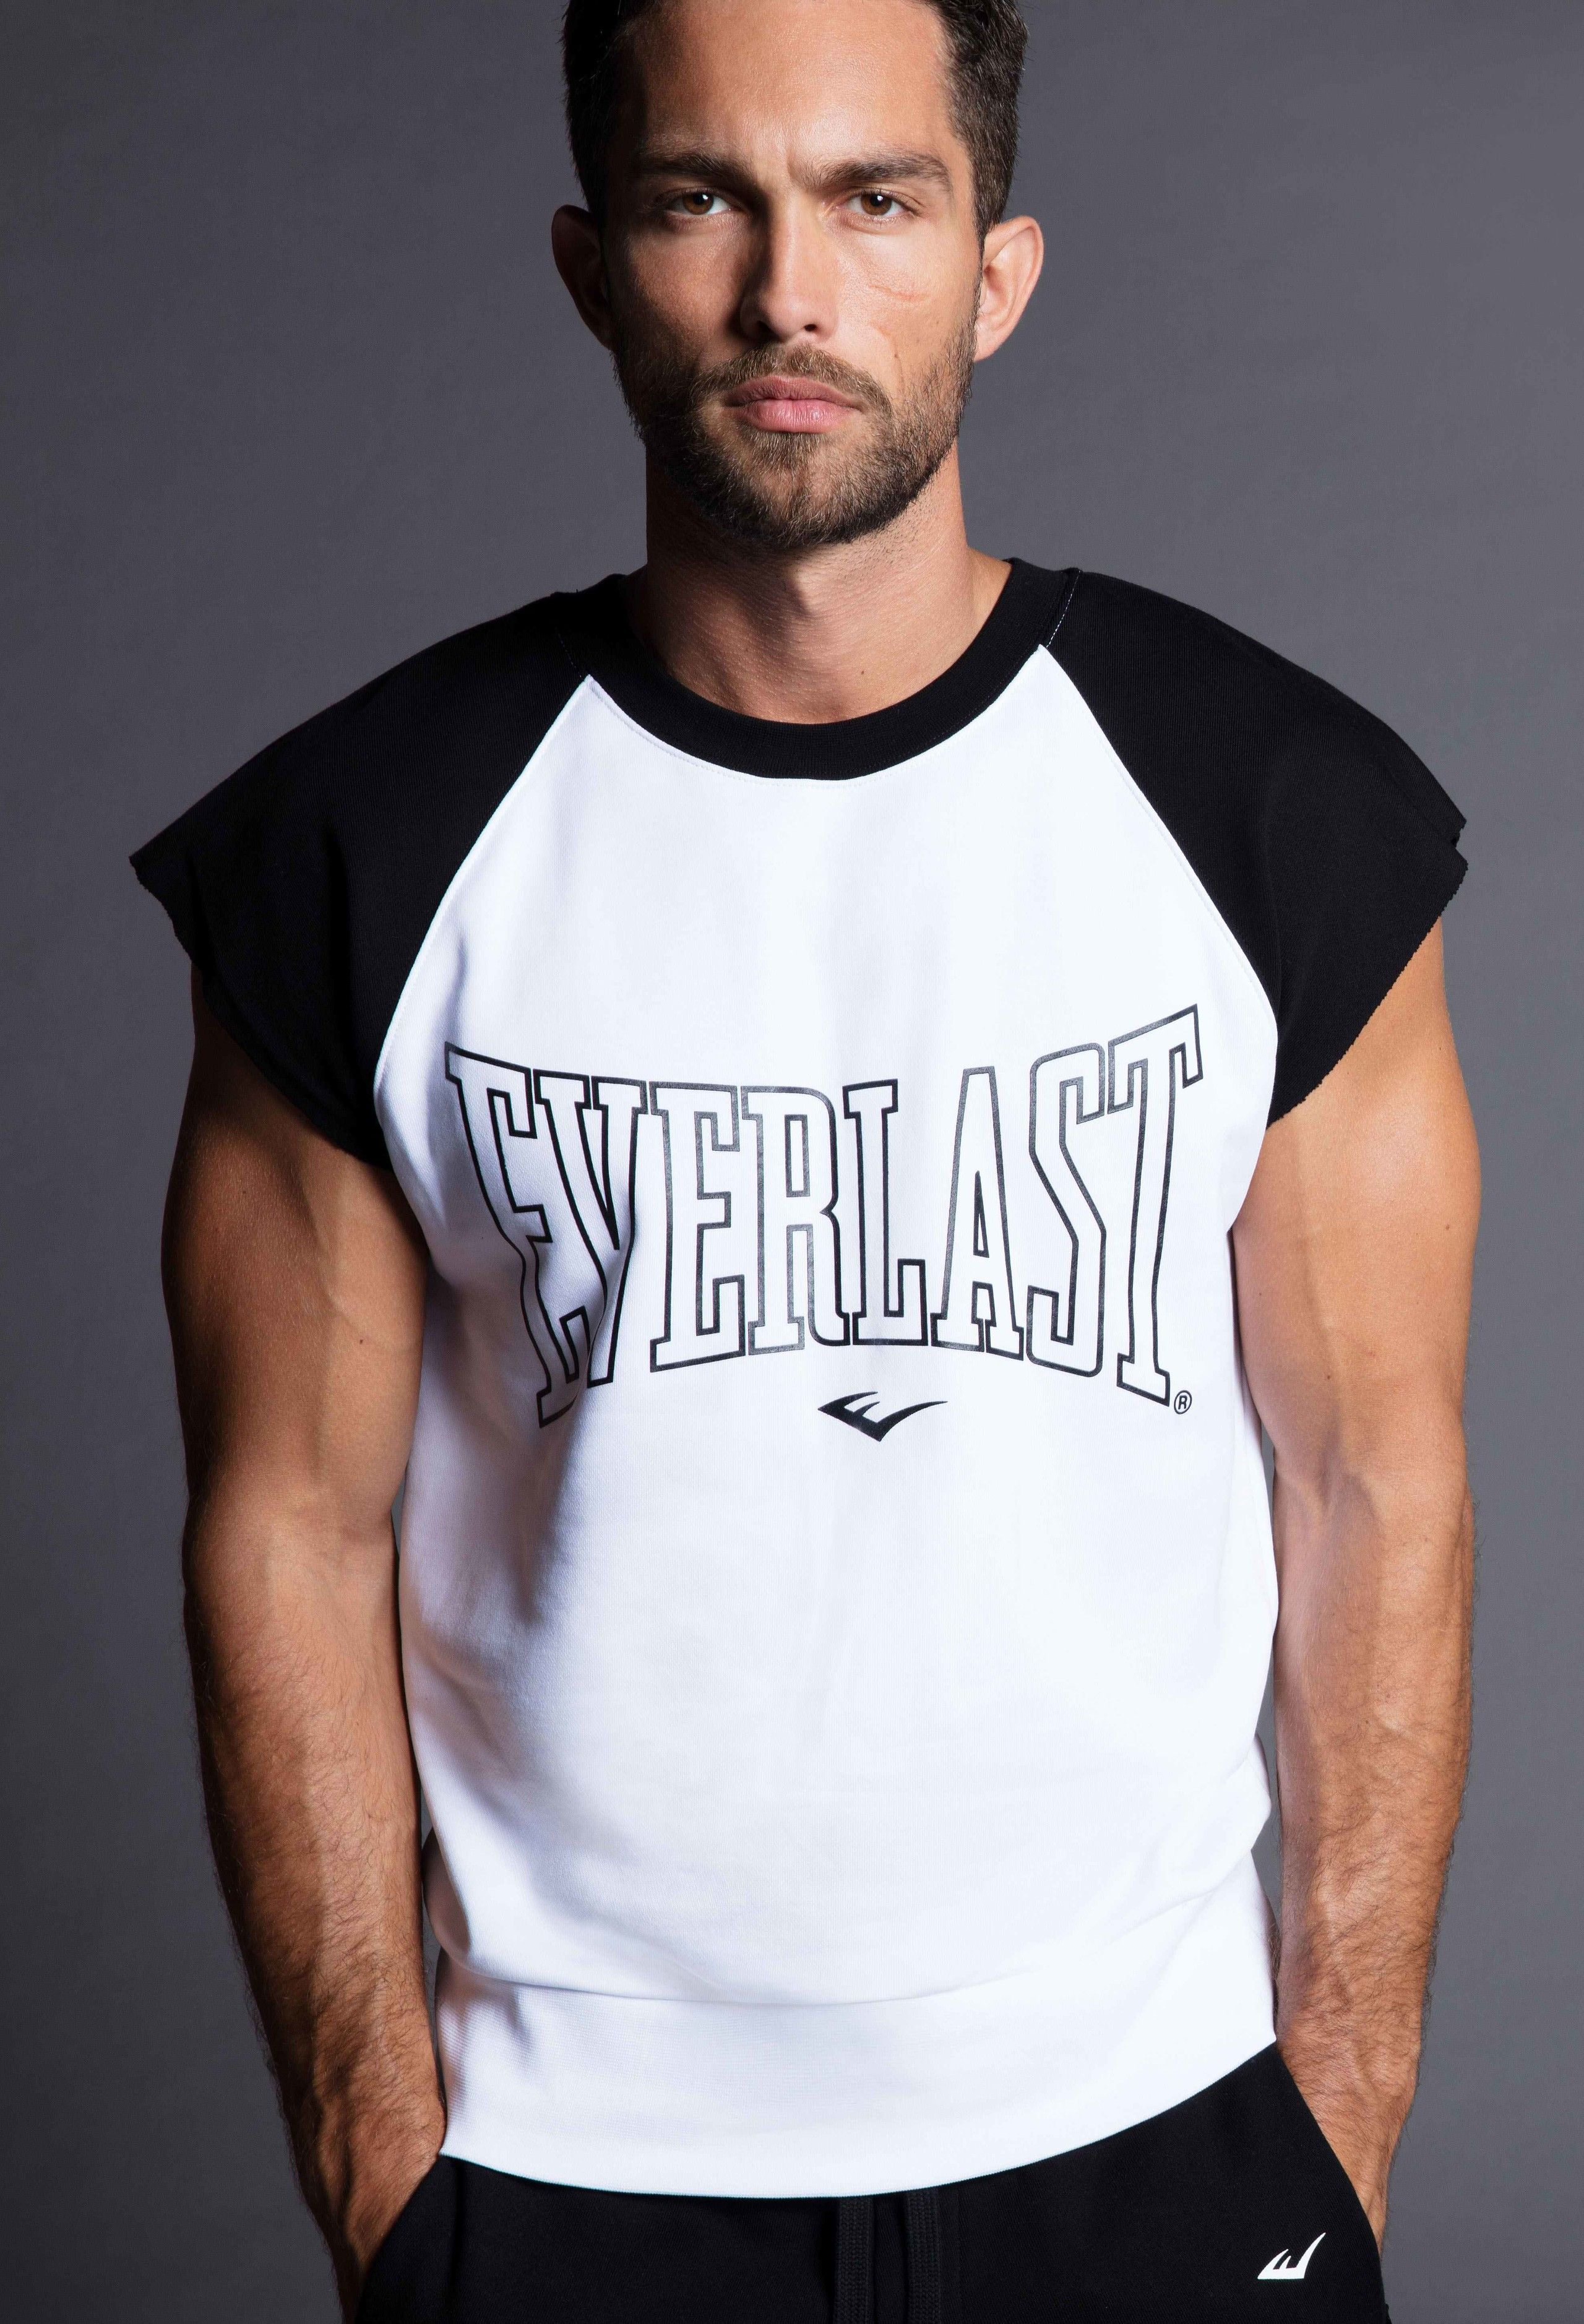 Everlast X Ports 1961 Collection